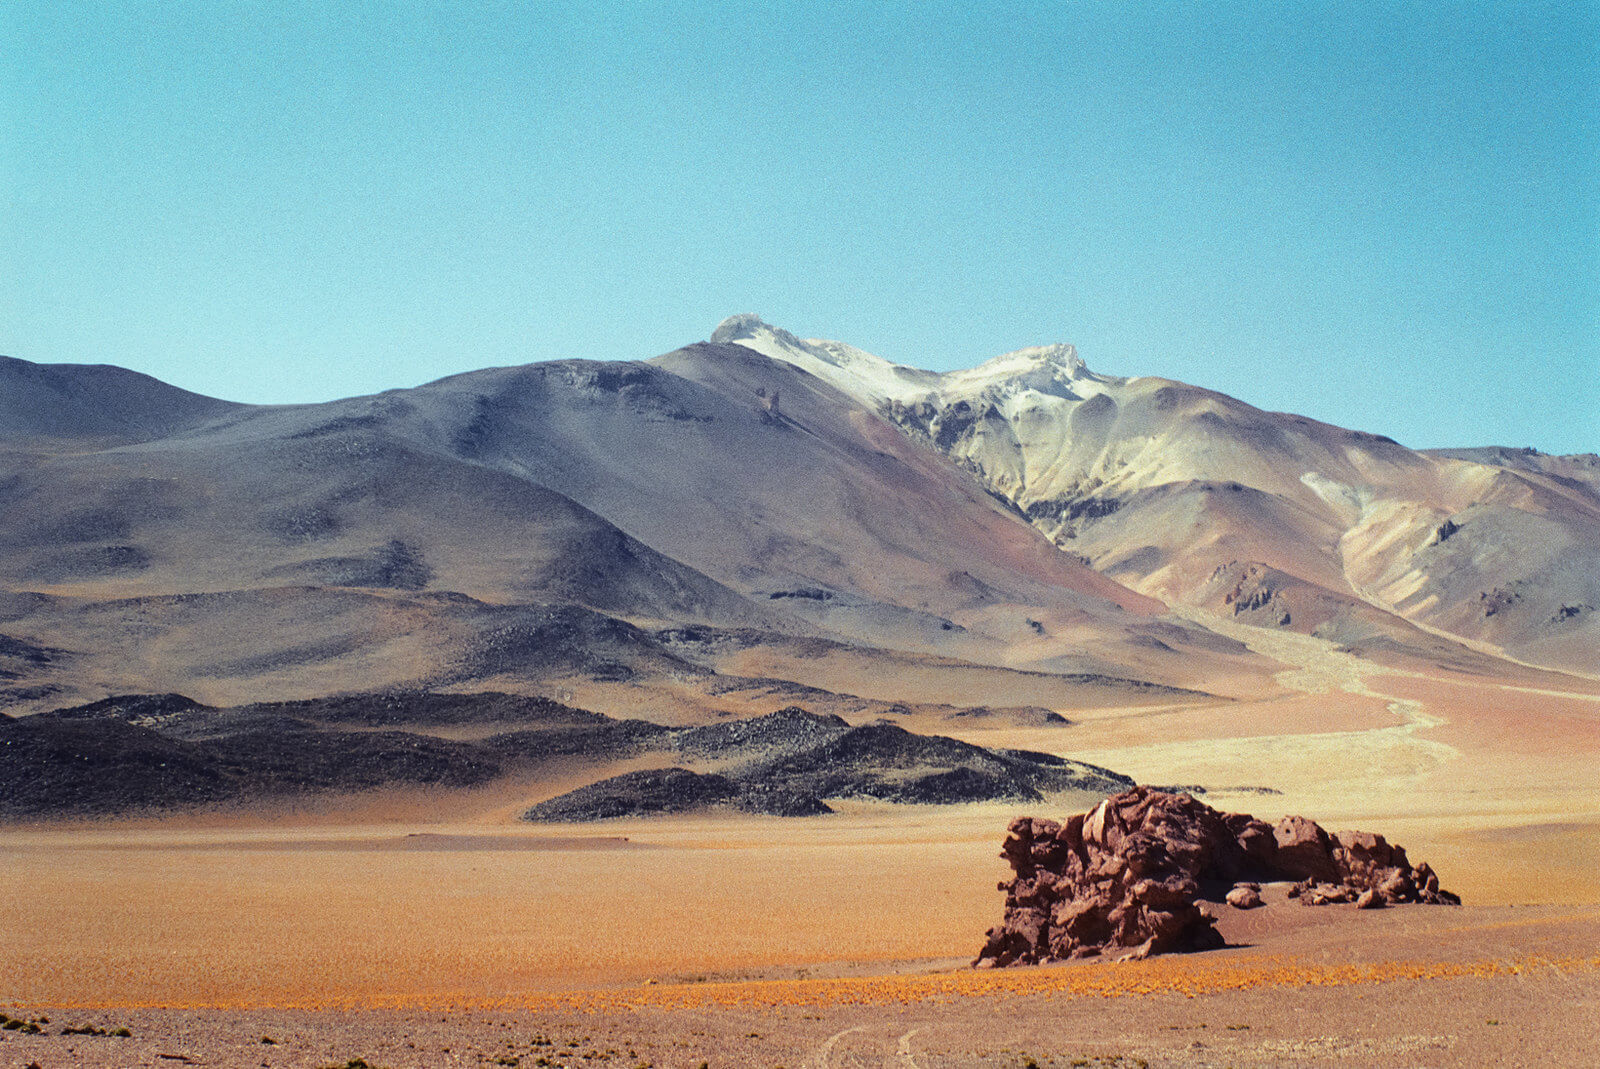 Deserto do Atacama Fonte: Jen Morgan.